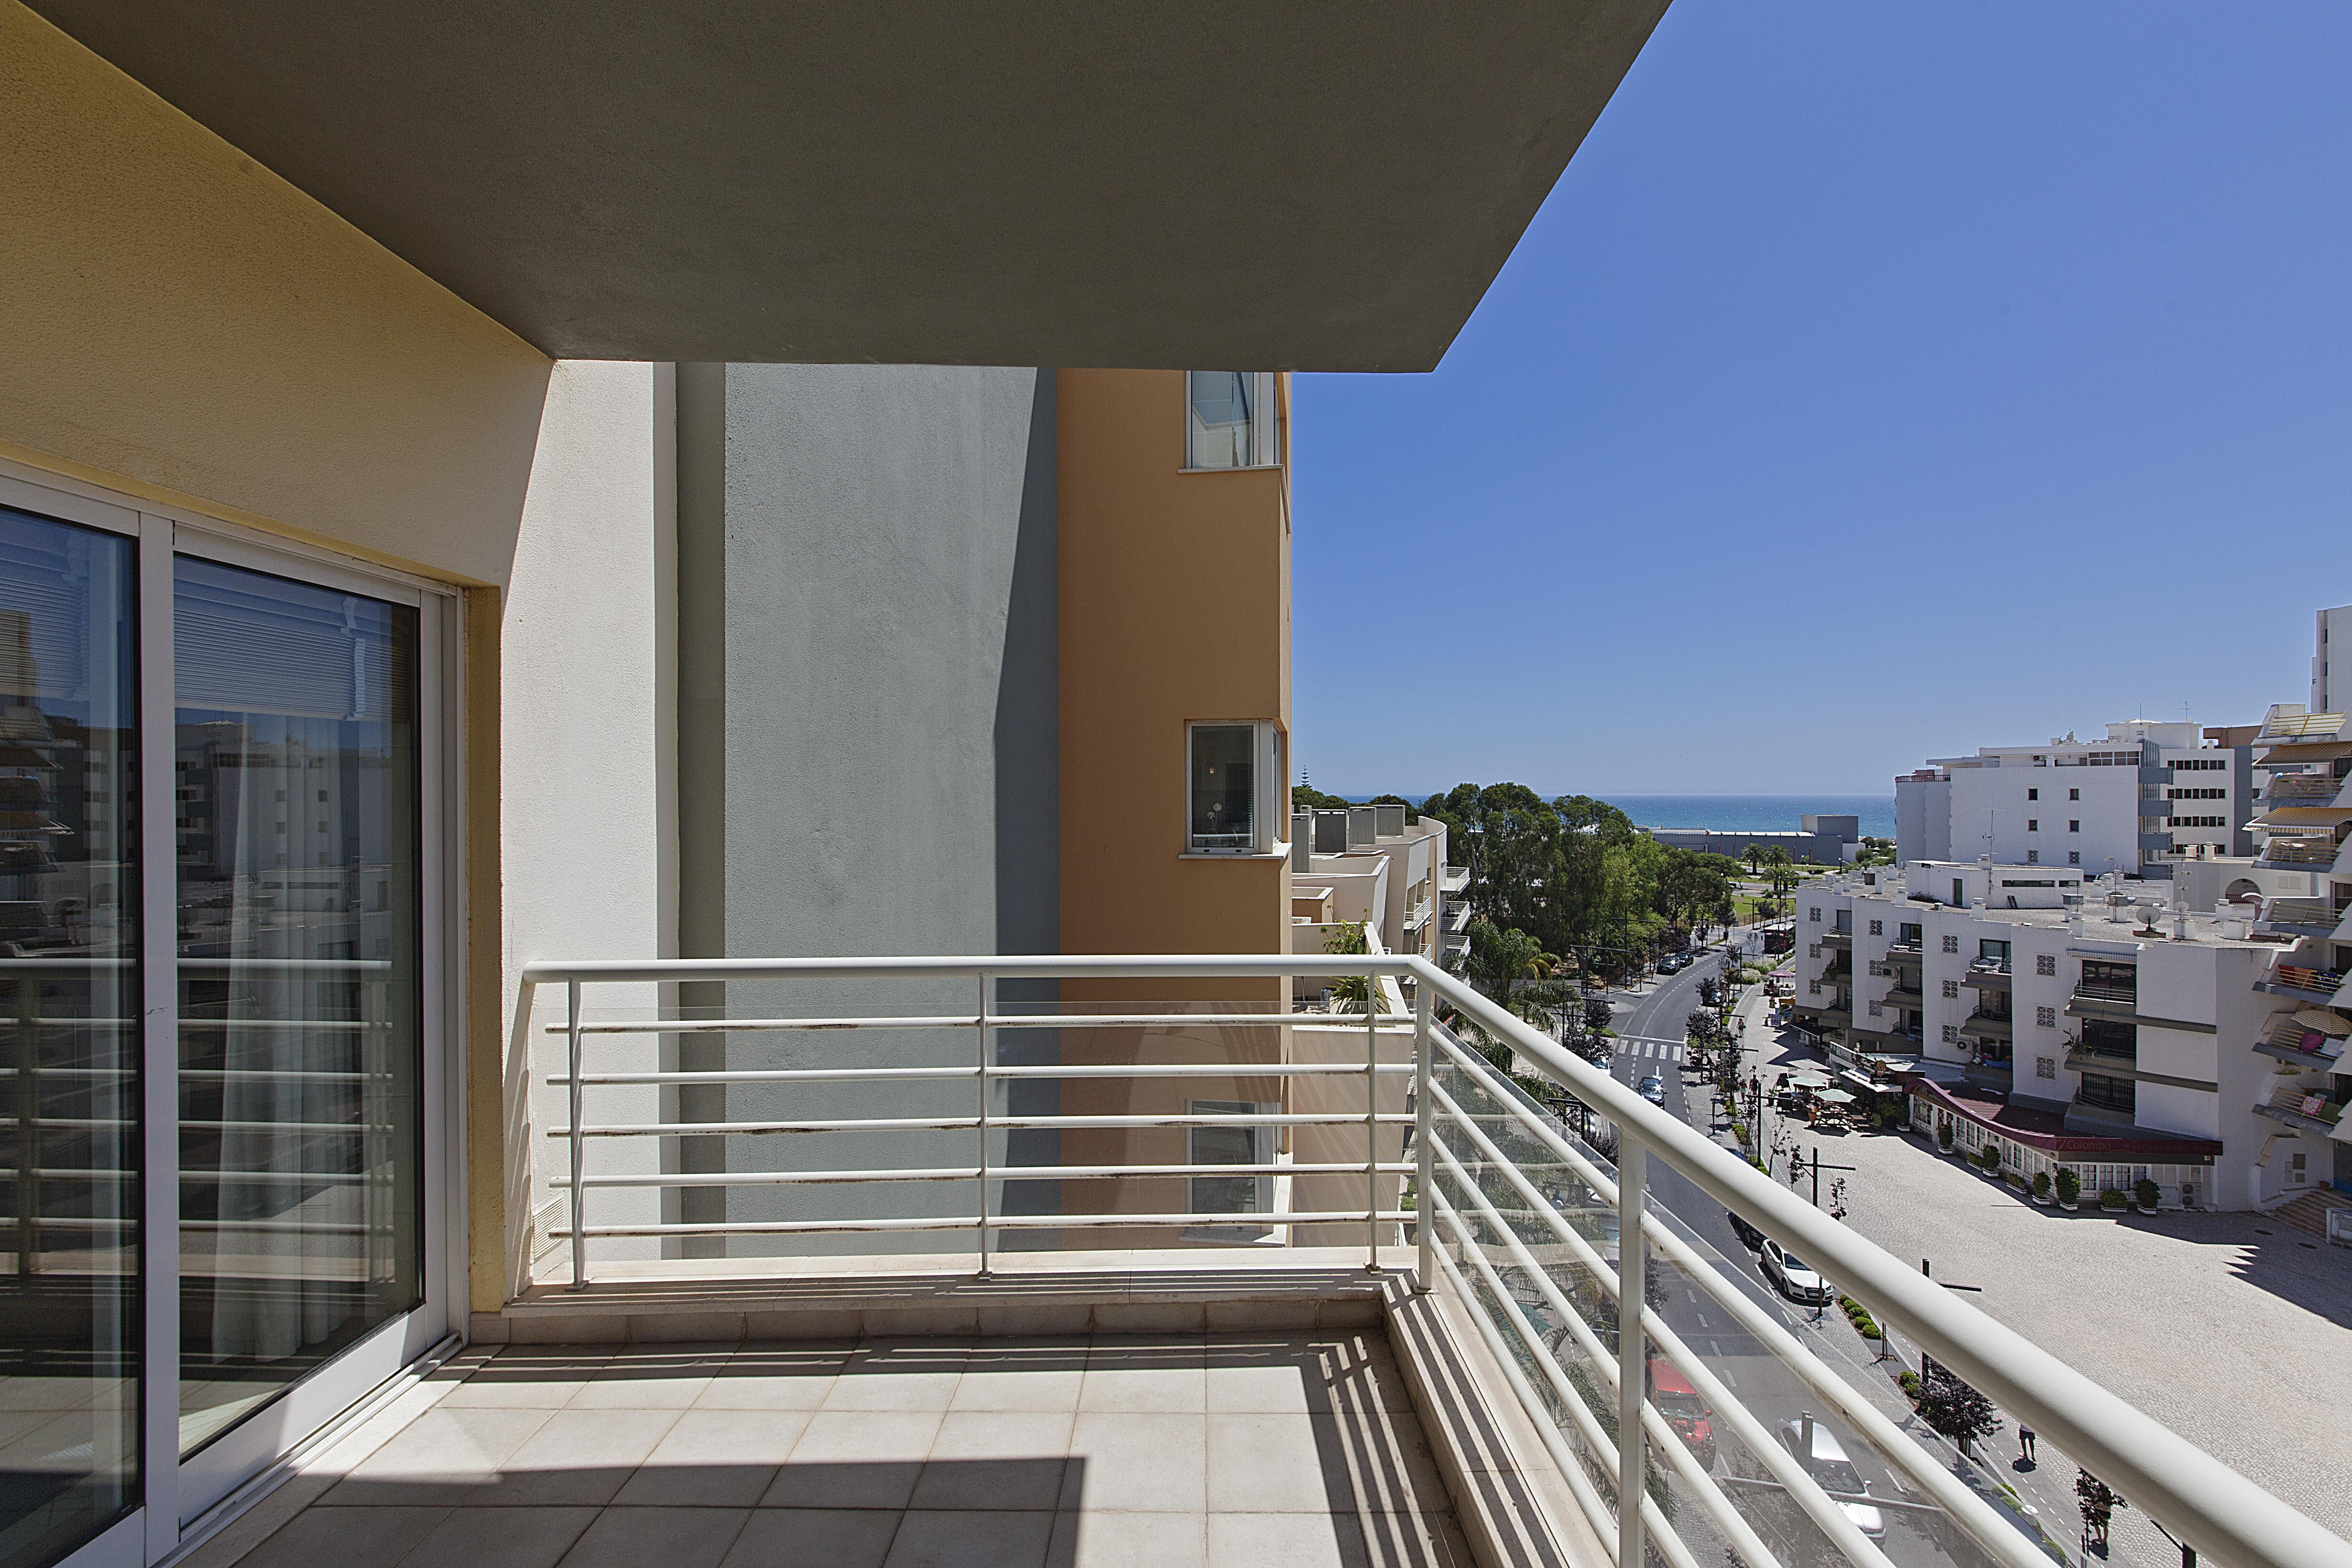 Apartment for Sale at Flat, 3 bedrooms, for Sale Loule, Algarve 8125-401 Portugal